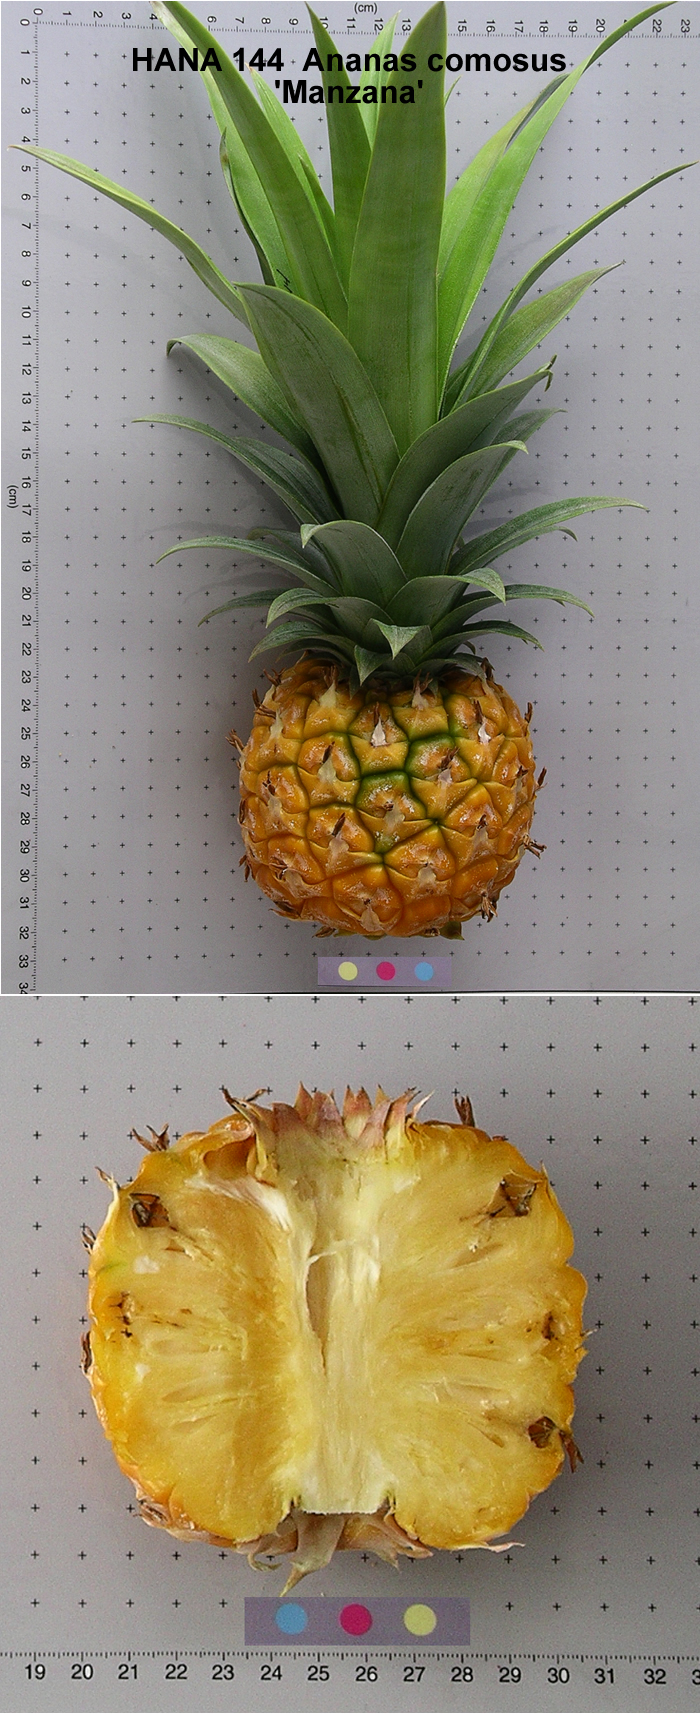 pineapple ananas comosus skin extract essay Pineapple as stain remover essay sample pineapple (ananas comosus) is a fruit which was classified as a ripe and unripe this was usually grown in a place where temperature and the weather are cold.